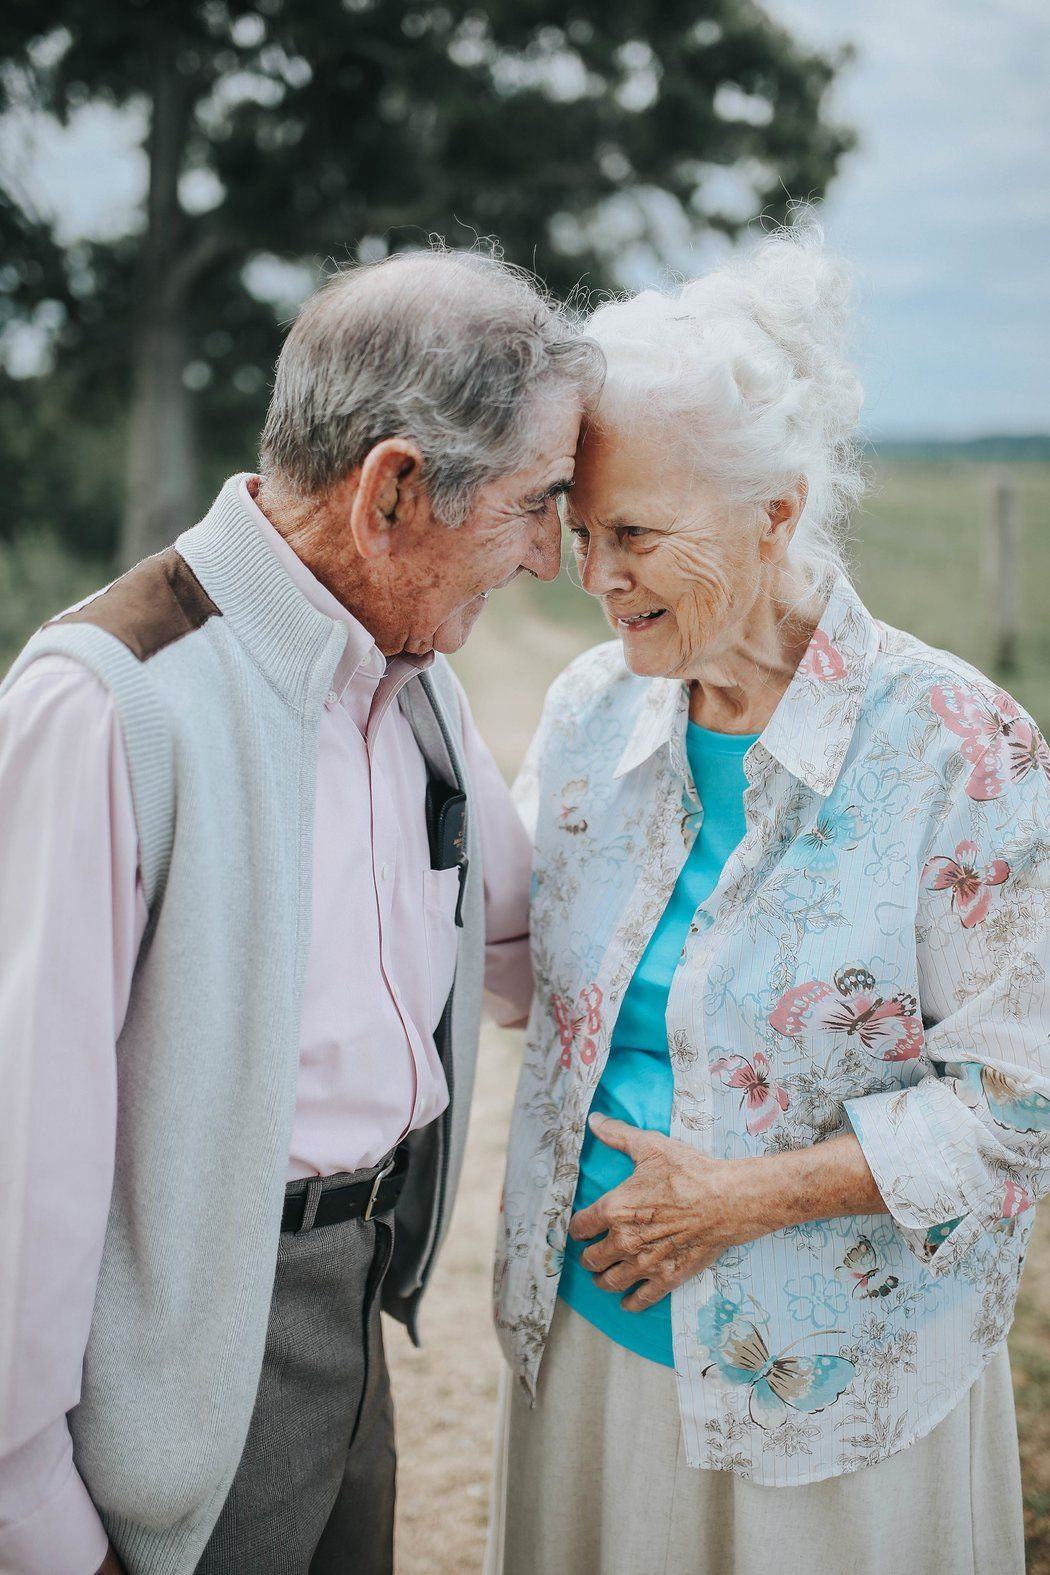 Lovebirds Married for 68 Years Prove Love Never Dies